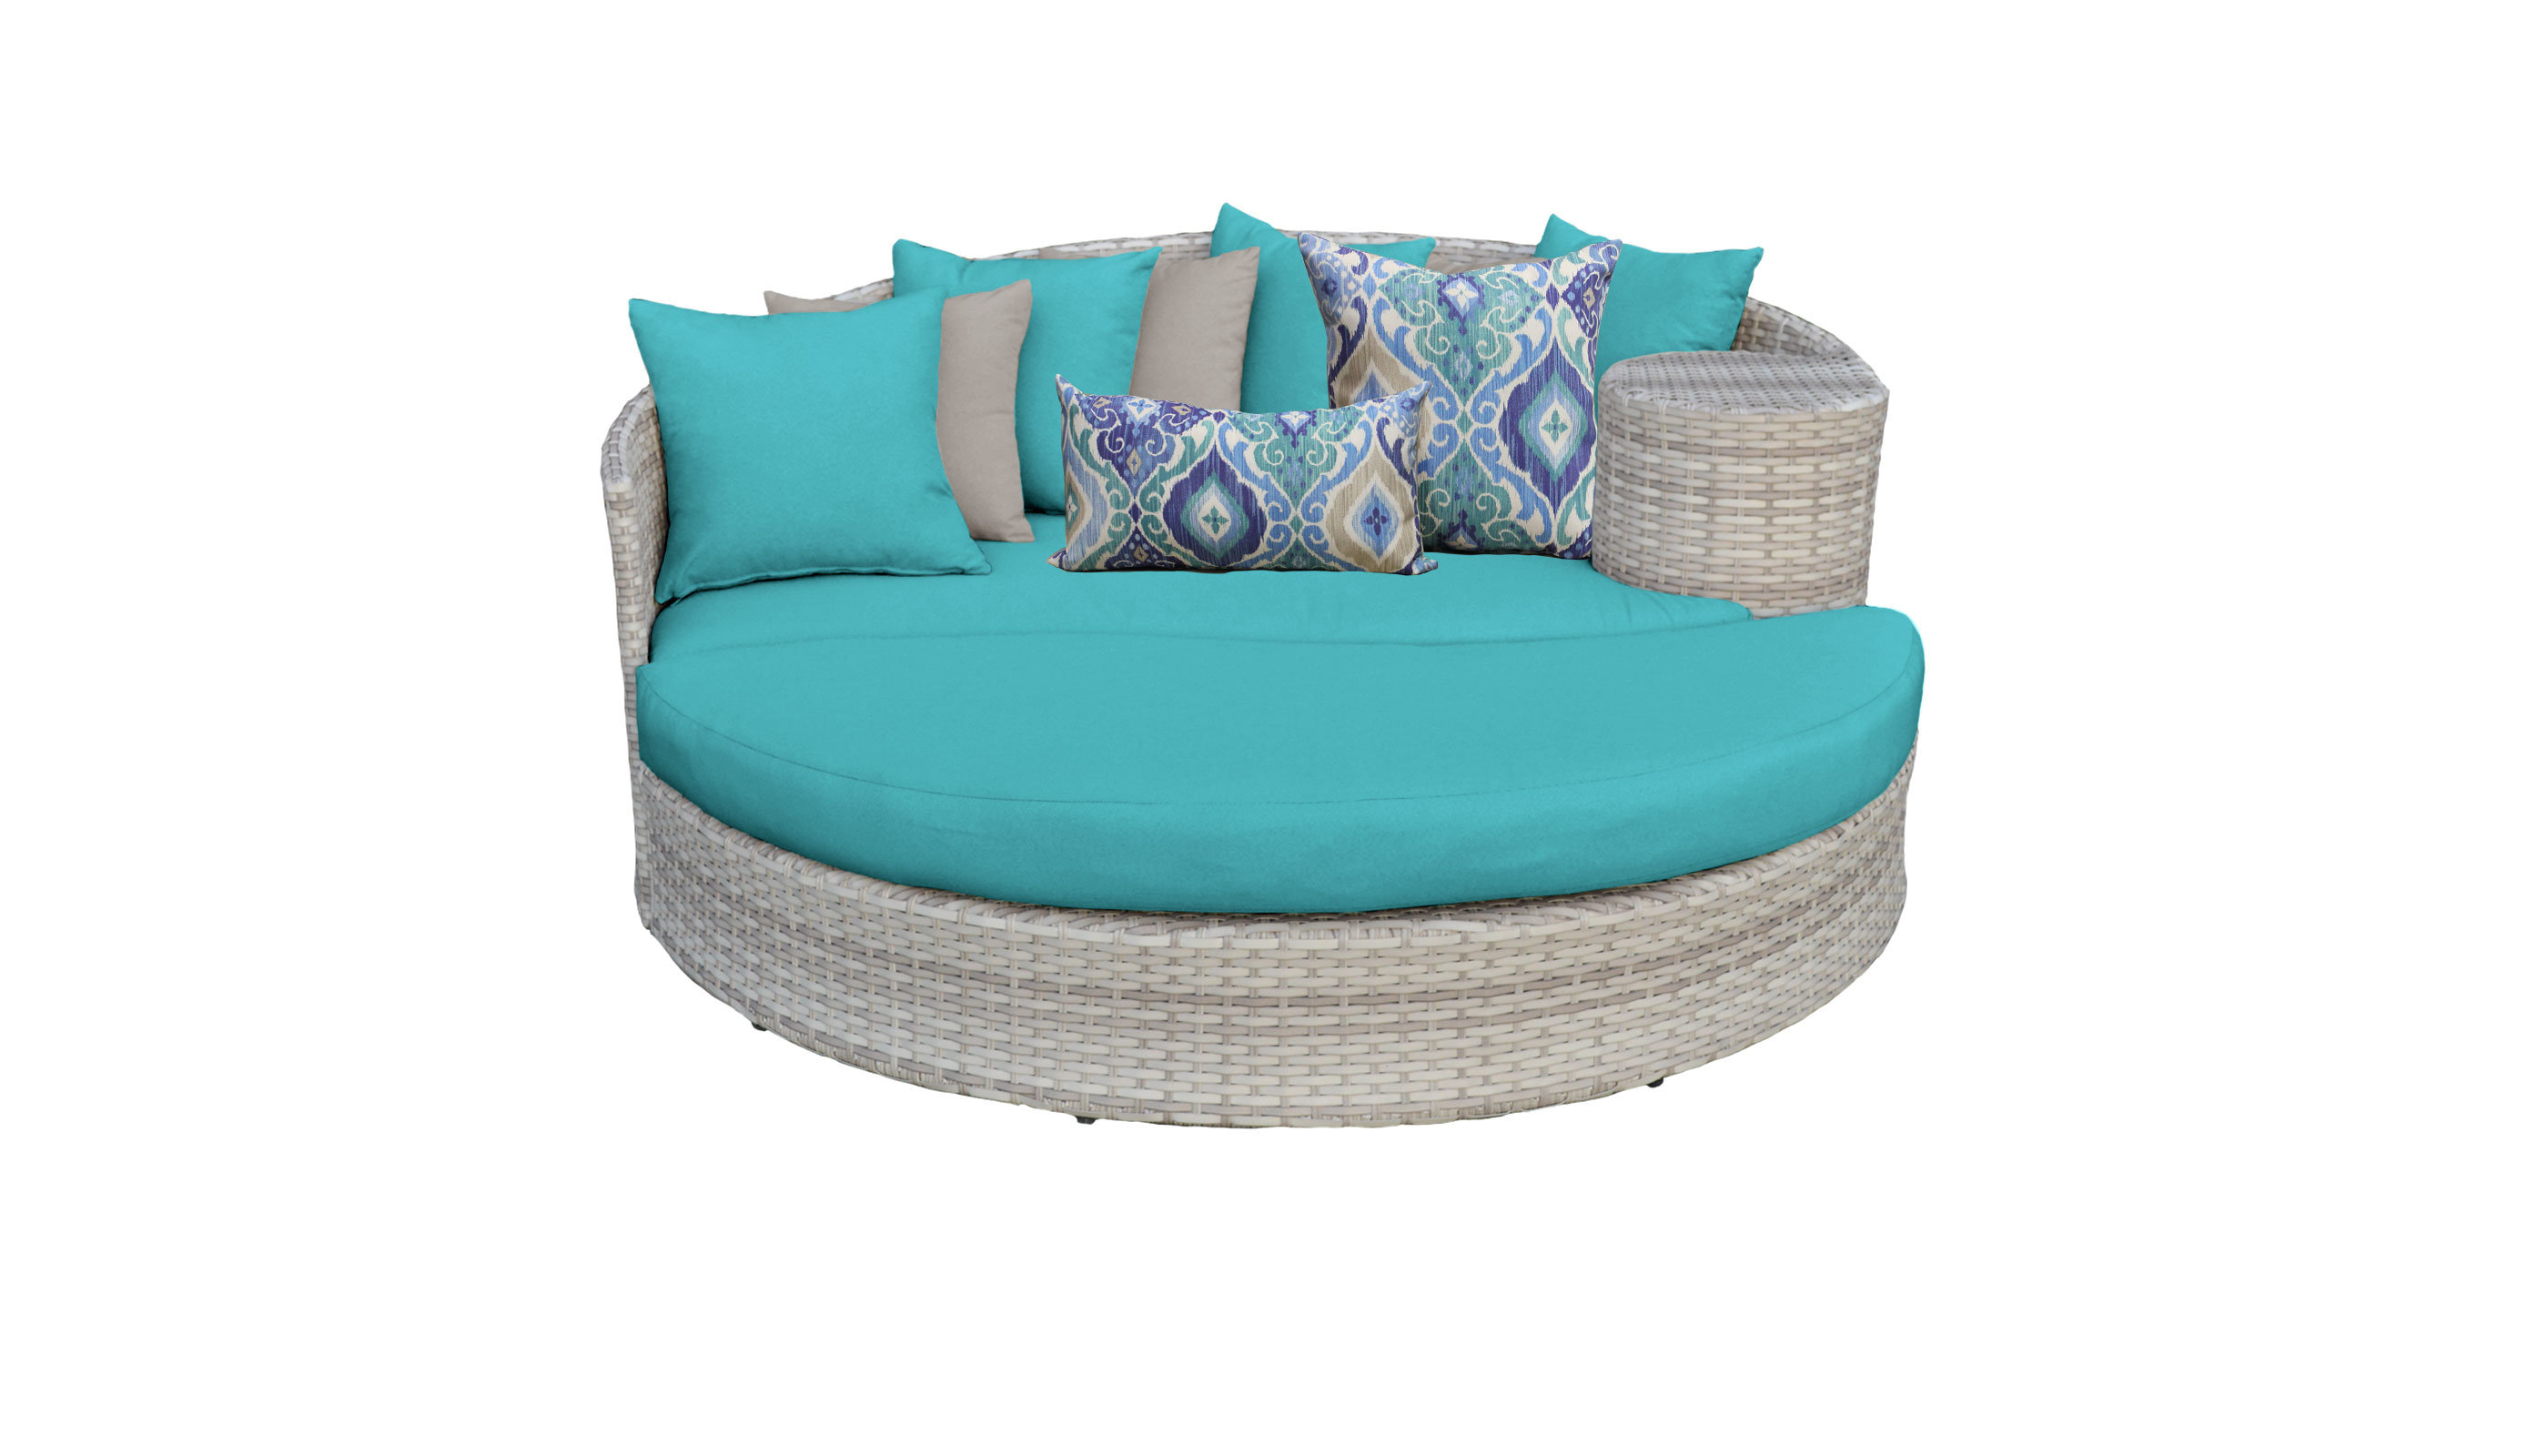 2020 Falmouth Patio Daybed With Cushions Within Patio Daybeds With Cushions (View 17 of 20)